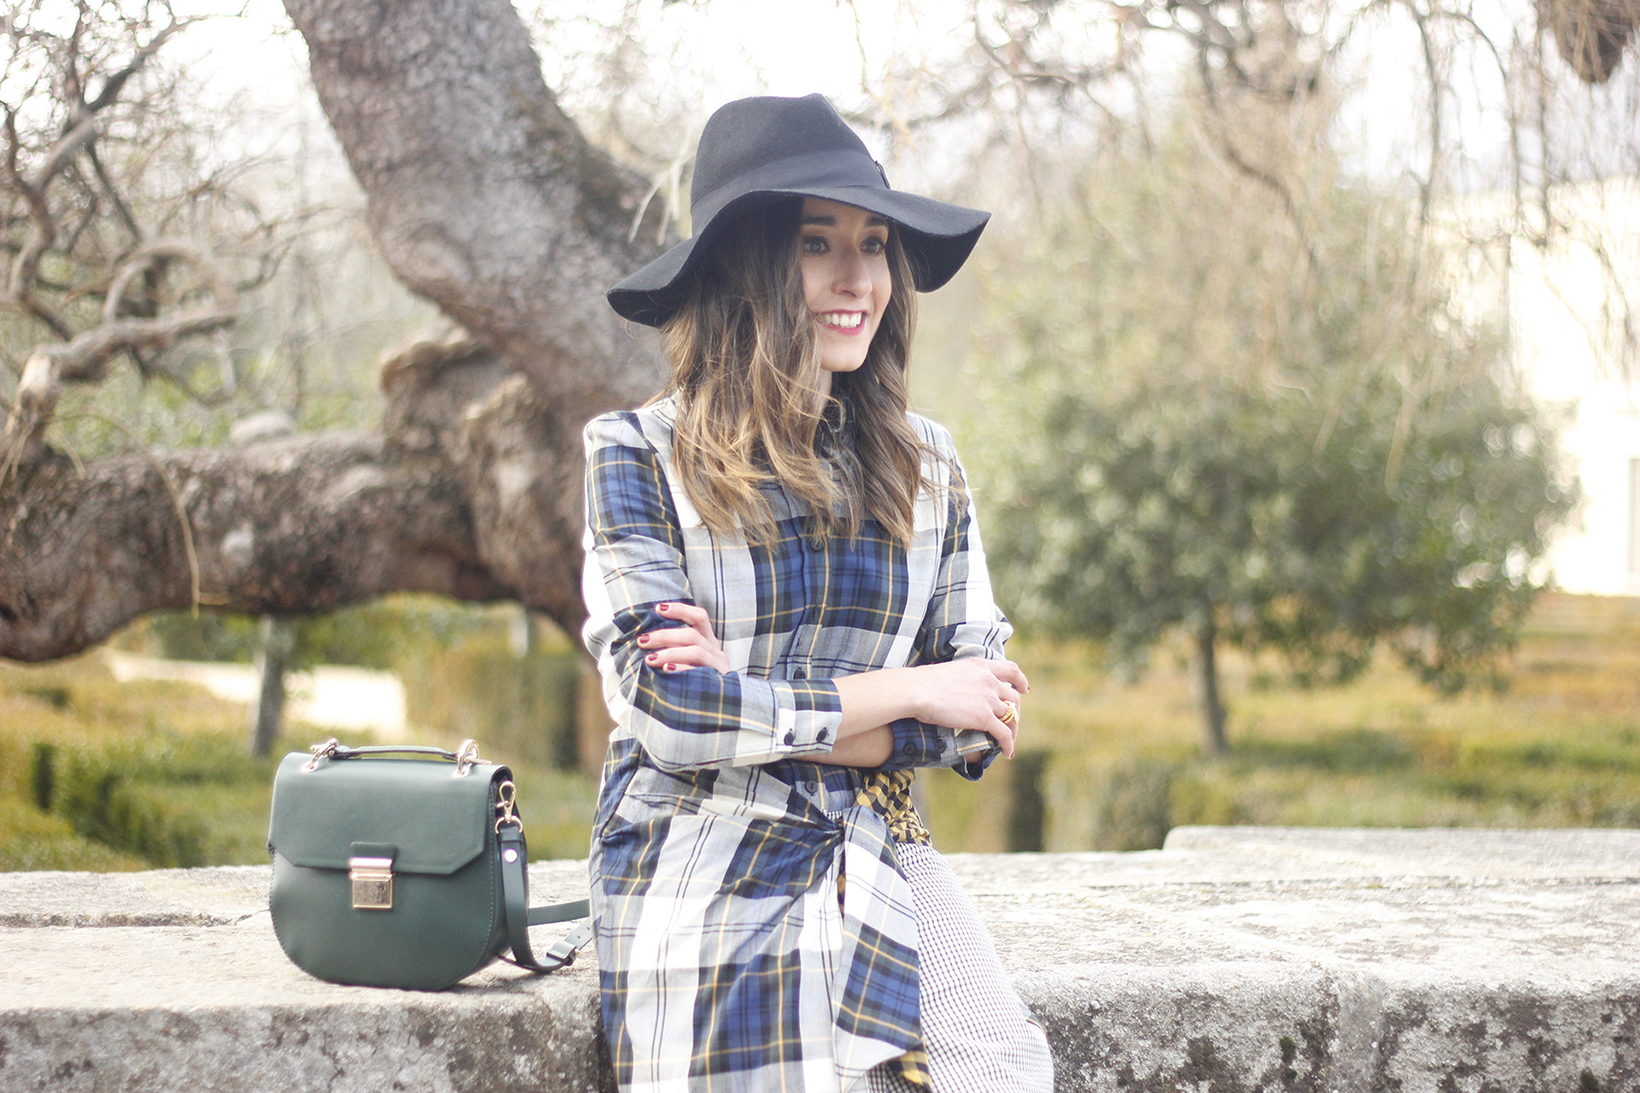 Tartan shirt dress zara over the knee boots mango hat green bag outfit fashion19